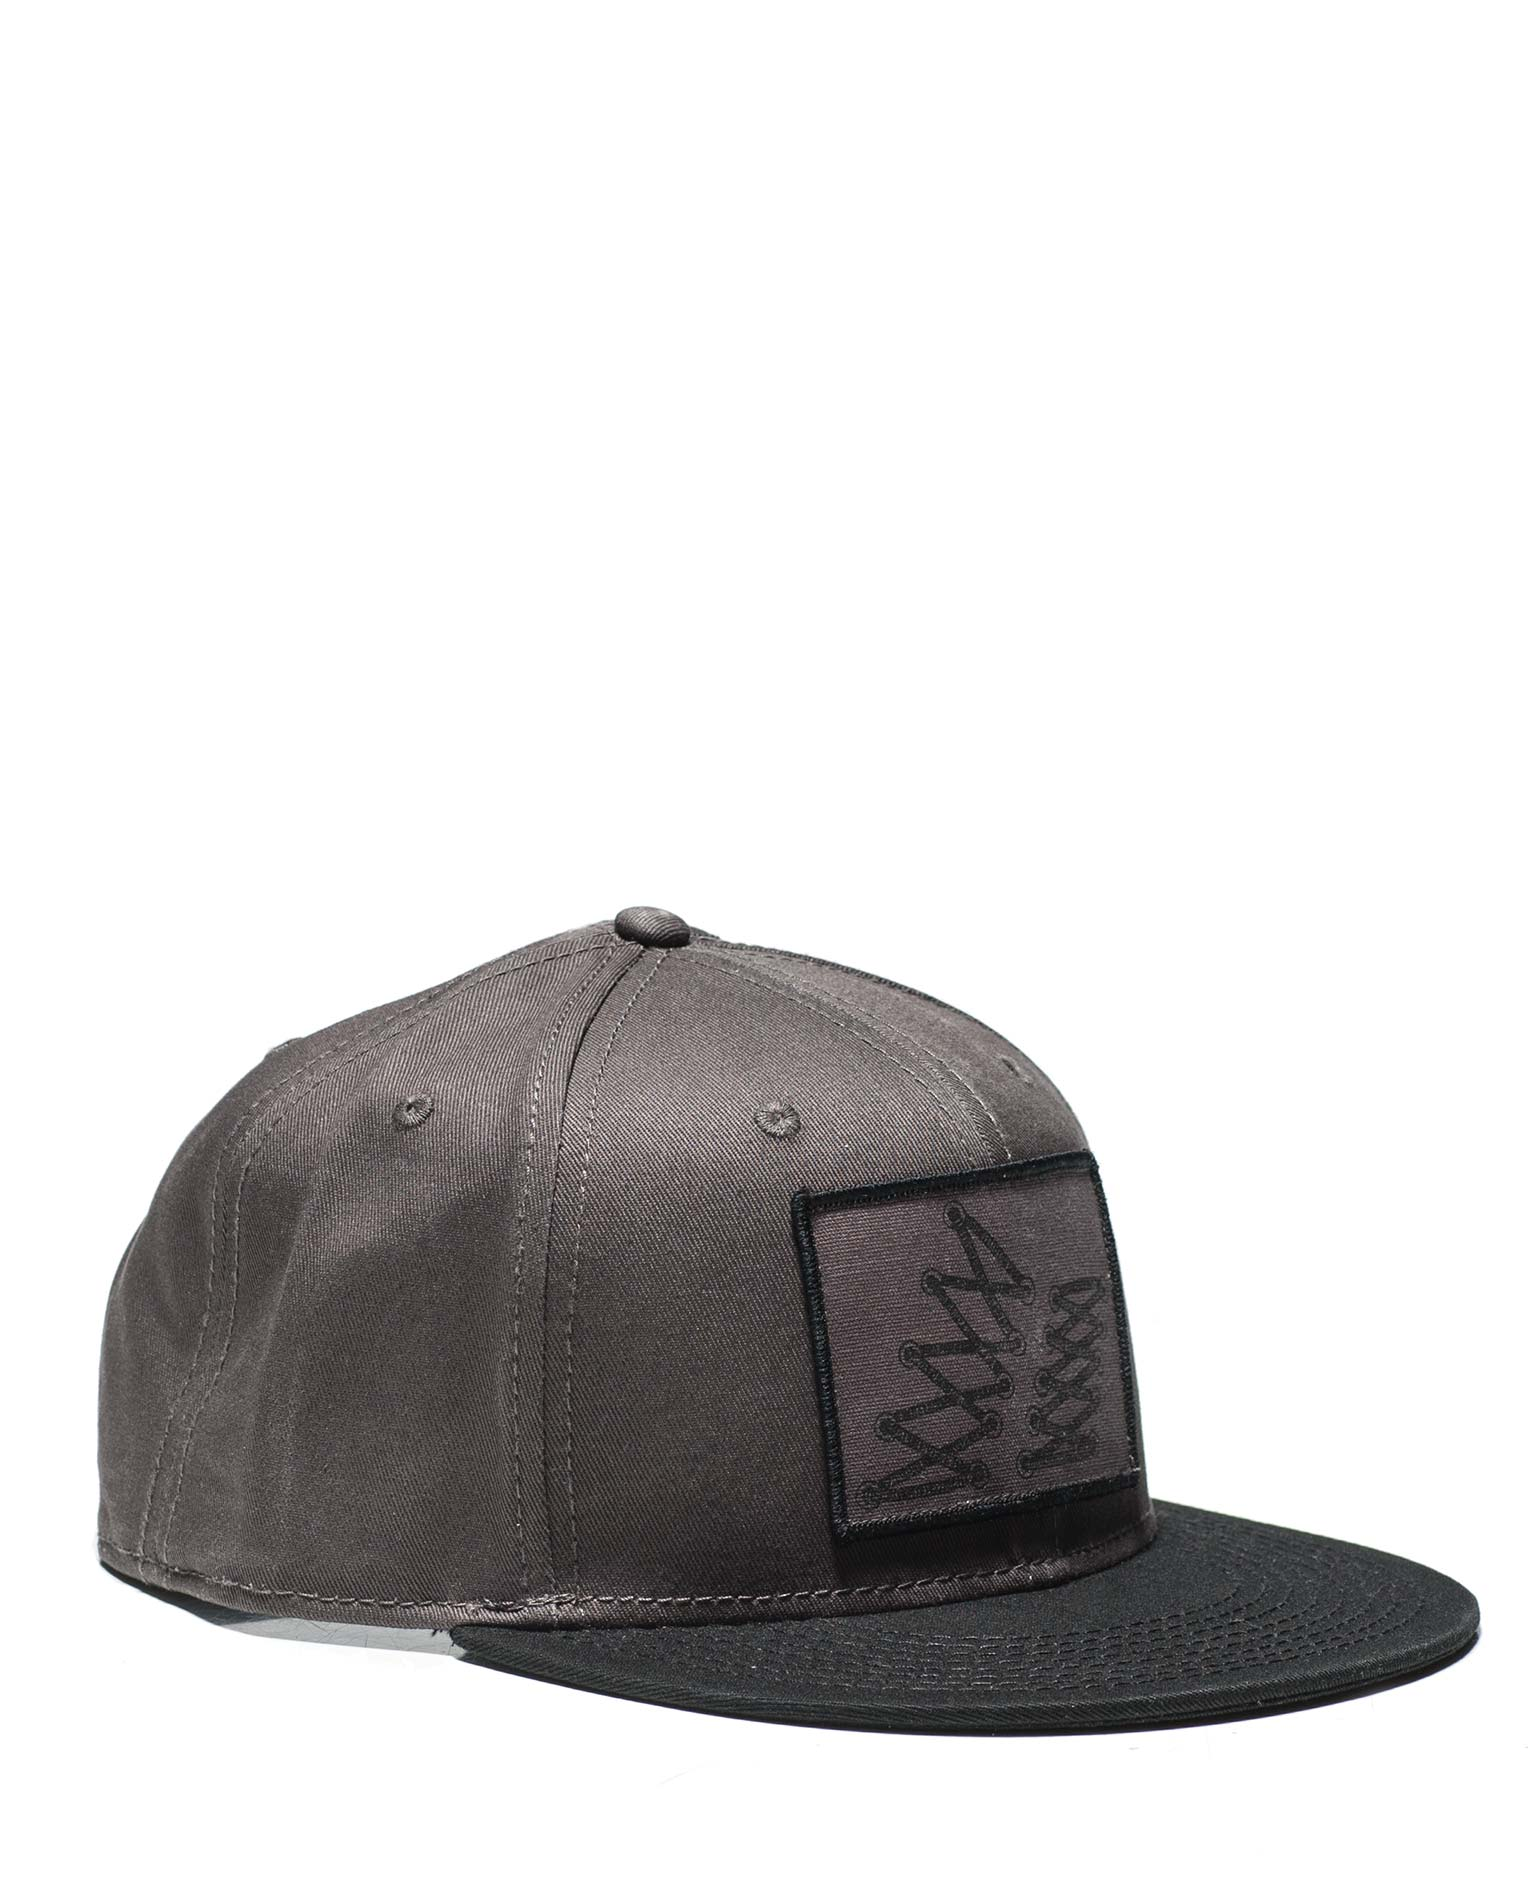 51ddc0eb3 Laced Snapback Macbeth 1478 - 1478 - Jerone.com